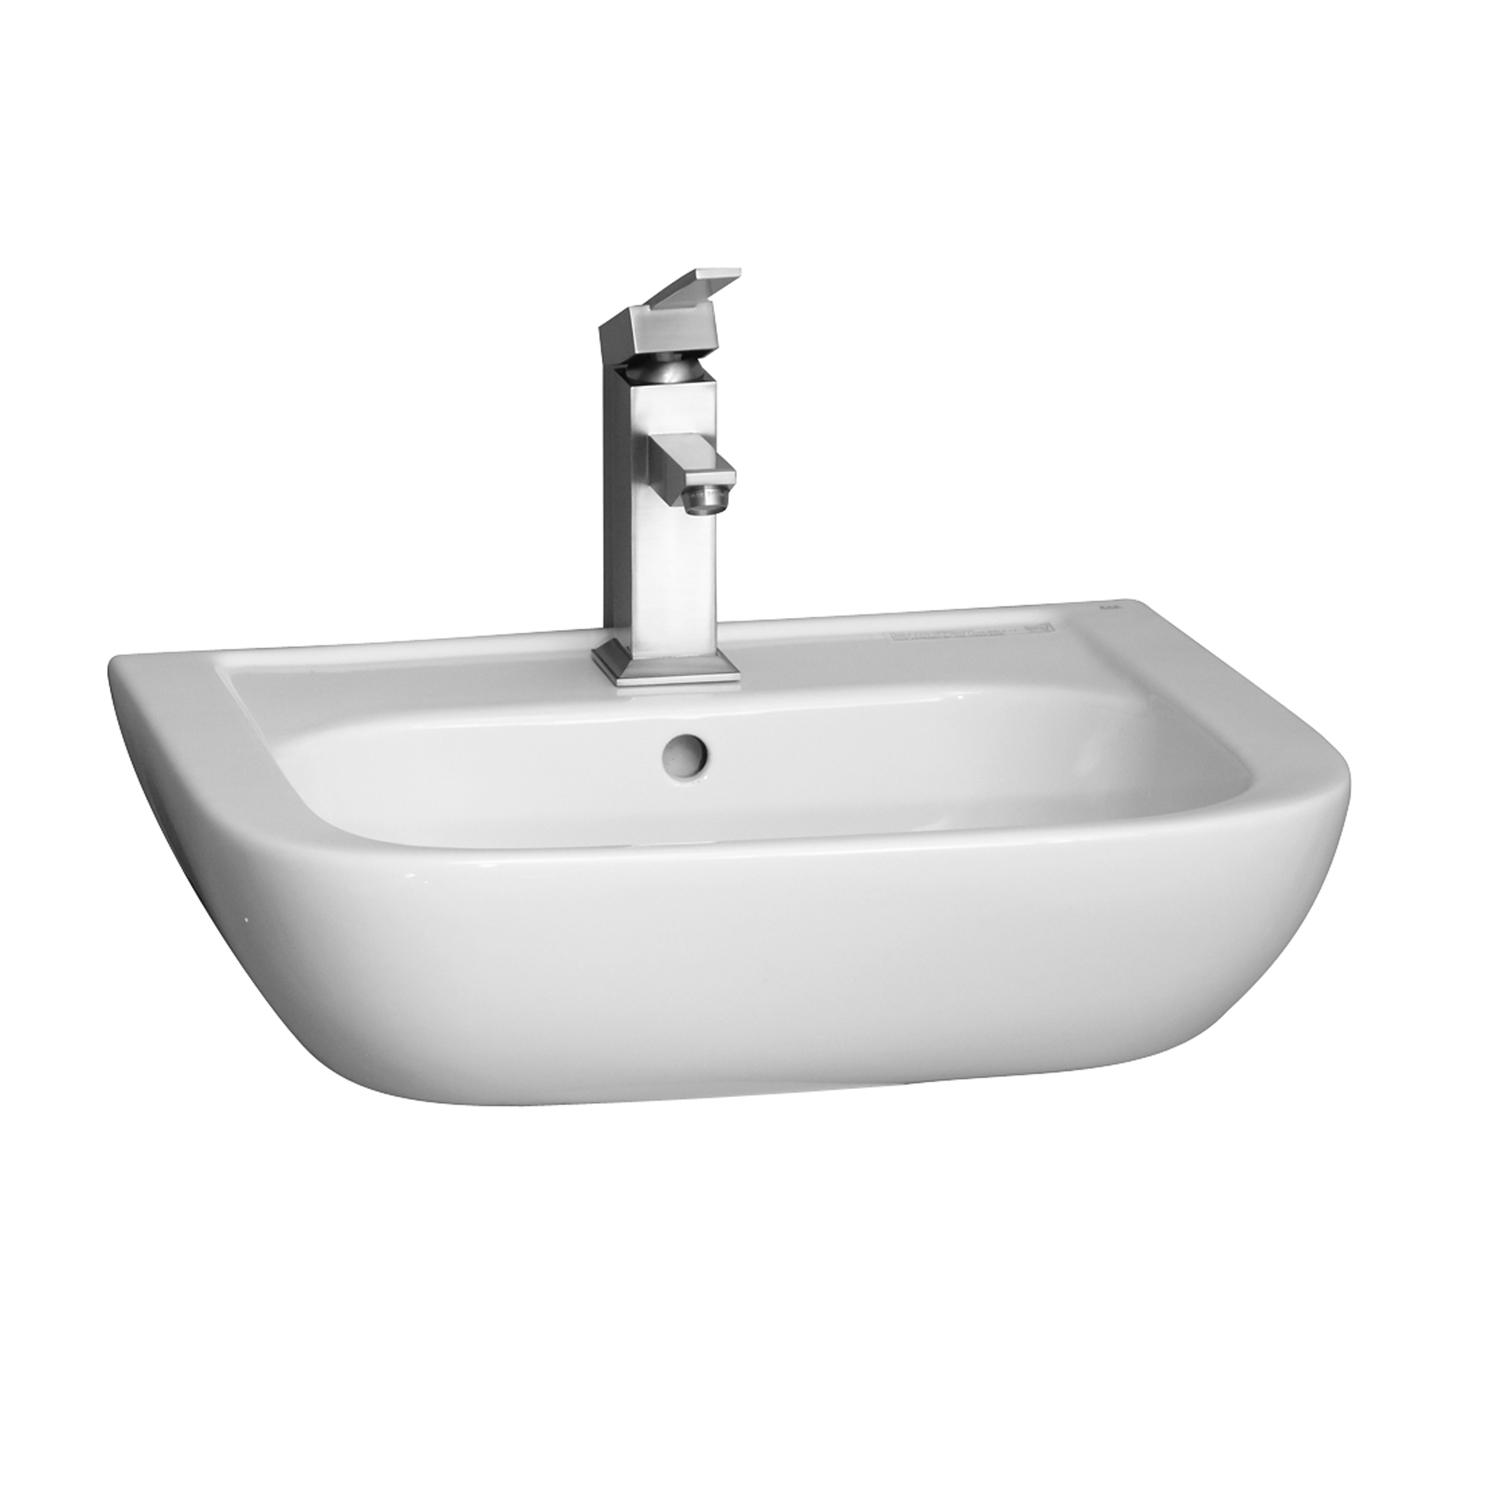 Fascinating barclay sinks single bowl double bowl stainless kitchen sink barclay sinks for kitchen ideas